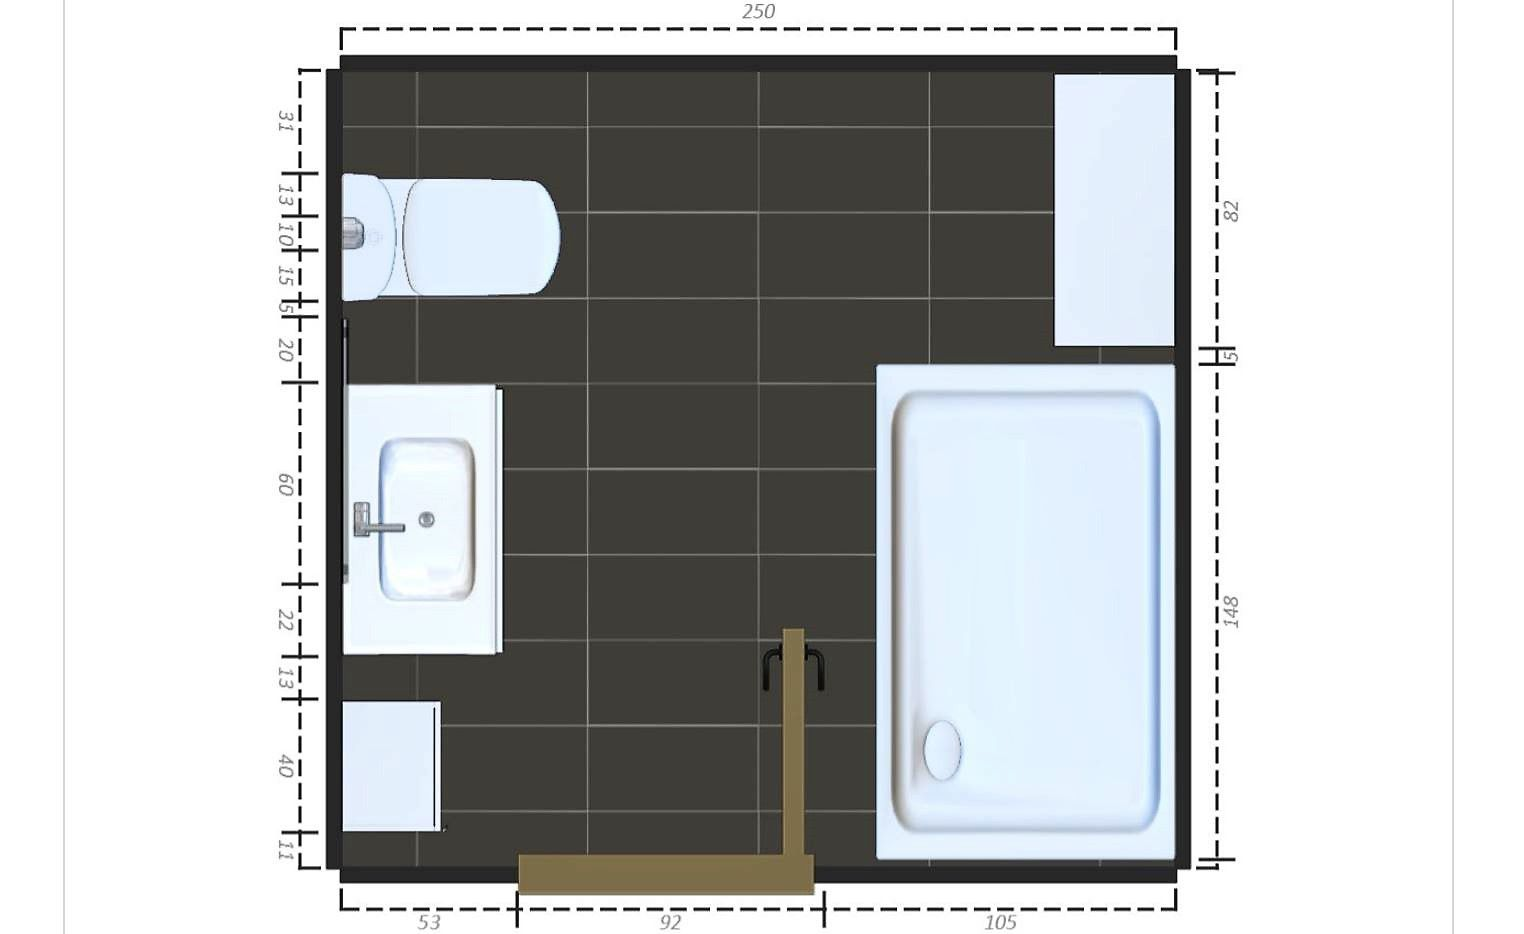 6x9 bathroom layout - 6x9 Bathroom Layout 49